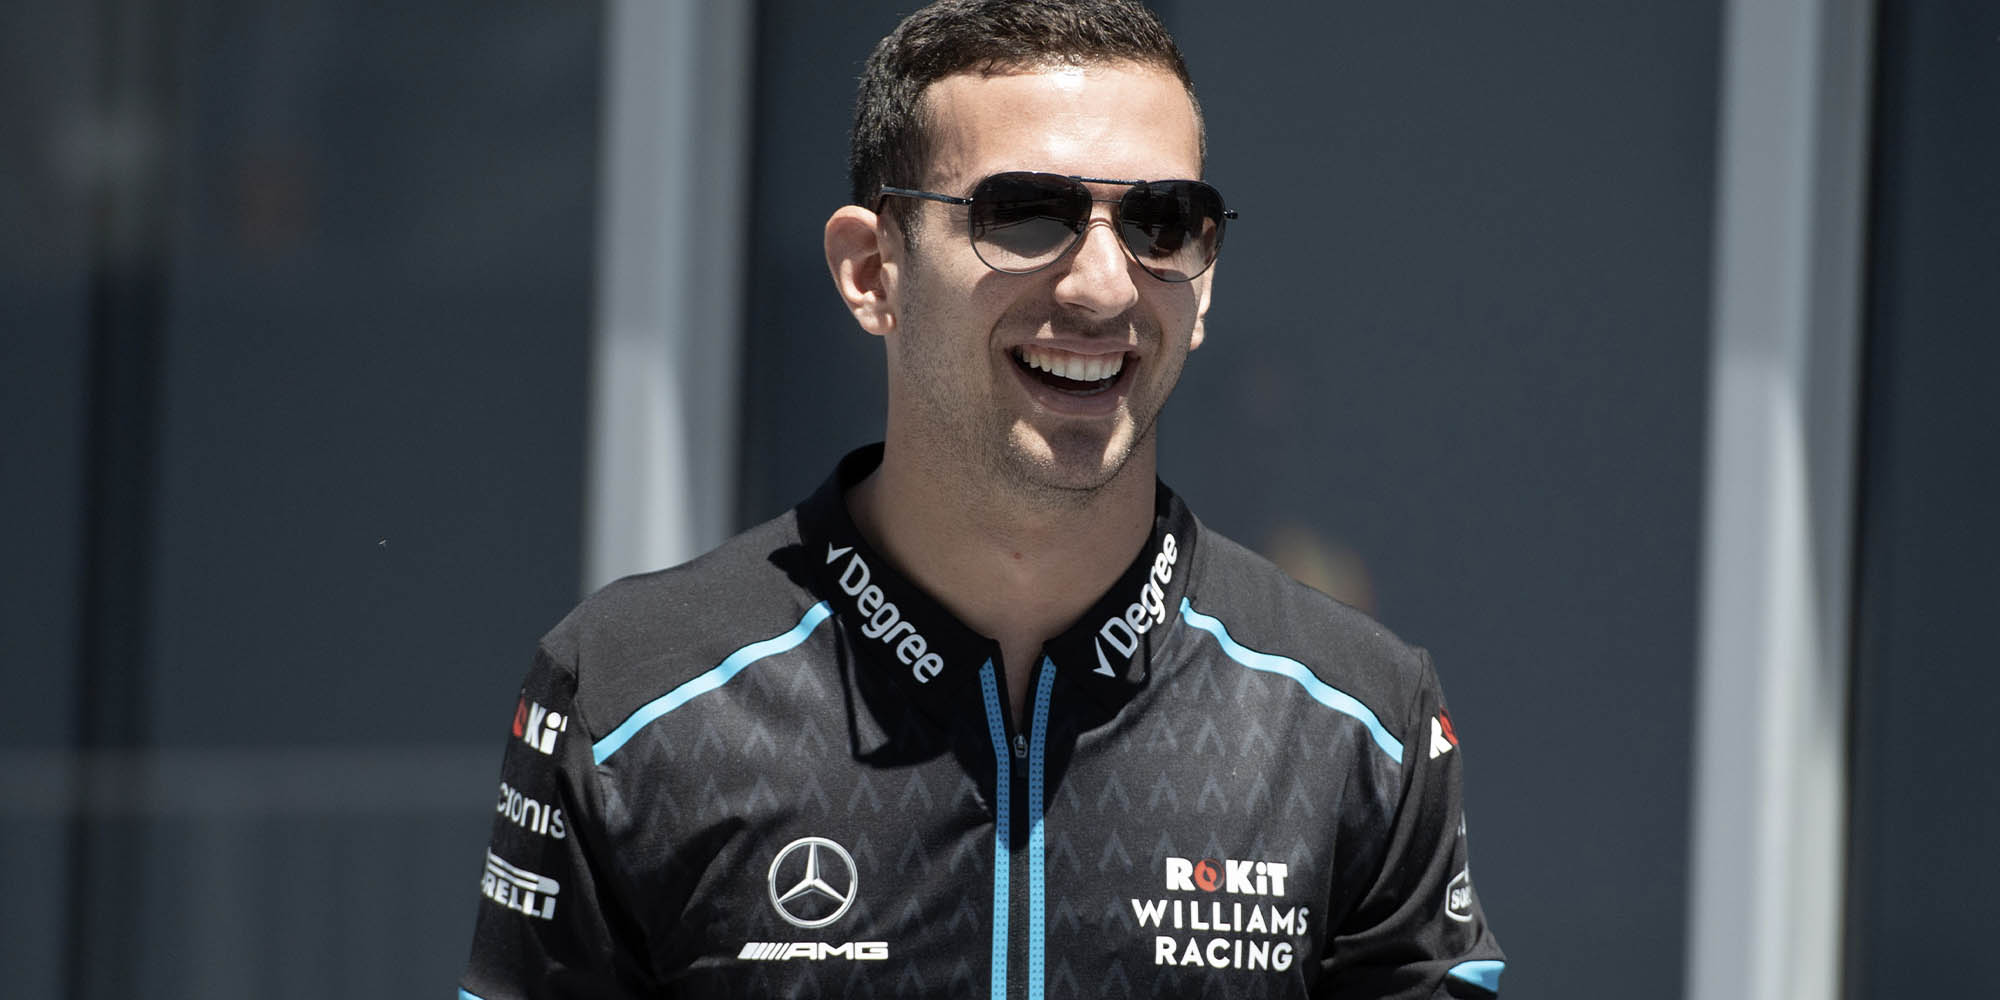 Williams confirms Nicholas Latifi for 2020 F1 season